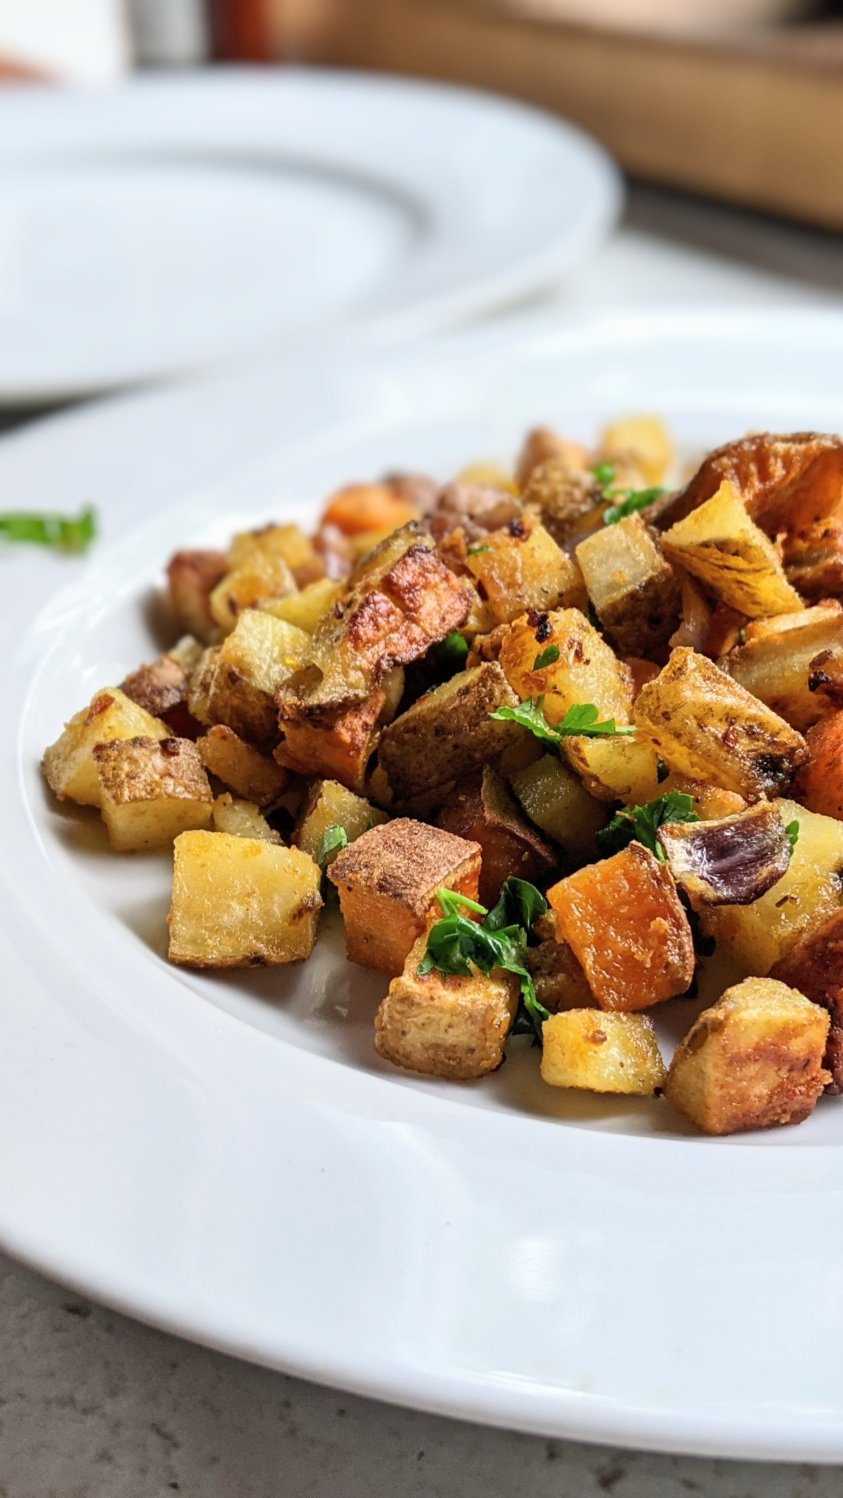 whole30 vegan breakfast recipes home fries sheet pan paleo recipes one pan brunch ideas for a crowd healthy home fries recipes